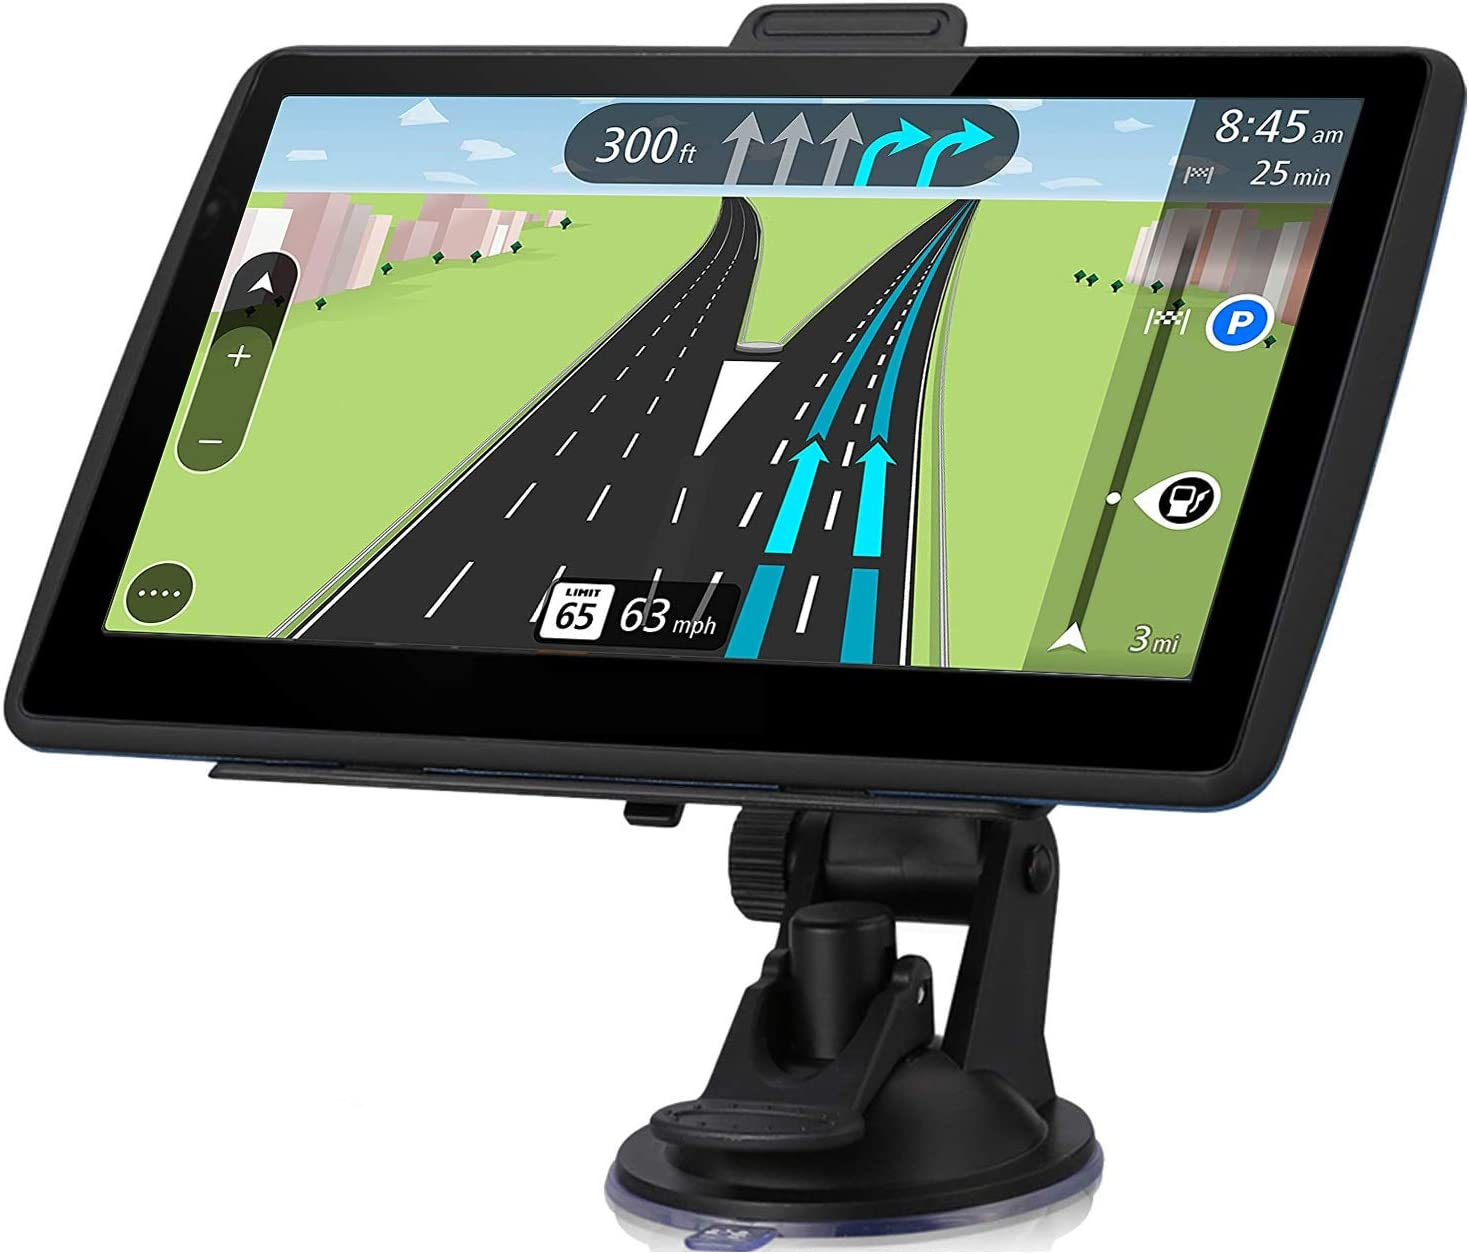 GPS Navigation for Car,7-inch Touch Screen Car GPS Real Voice Spoken Turn-by-Turn Direction Reminding Navigation System for Cars Vehicle GPS Satellite Navigator with Free Lifetime Map Update